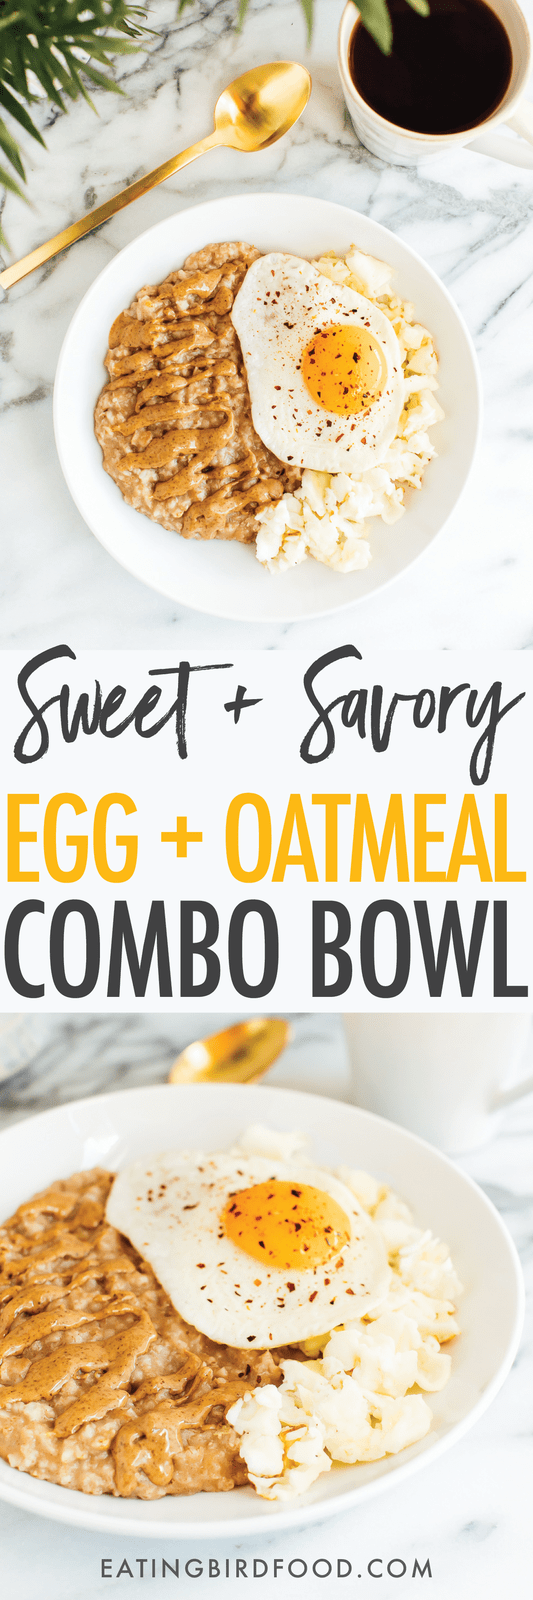 Having eggs and oats for breakfast? Put them in one bowl for a sweet + savory egg and oatmeal bowl that offers the perfect balance of protein, carbs and fat! Added bonus, there's only one serving dish to wash!